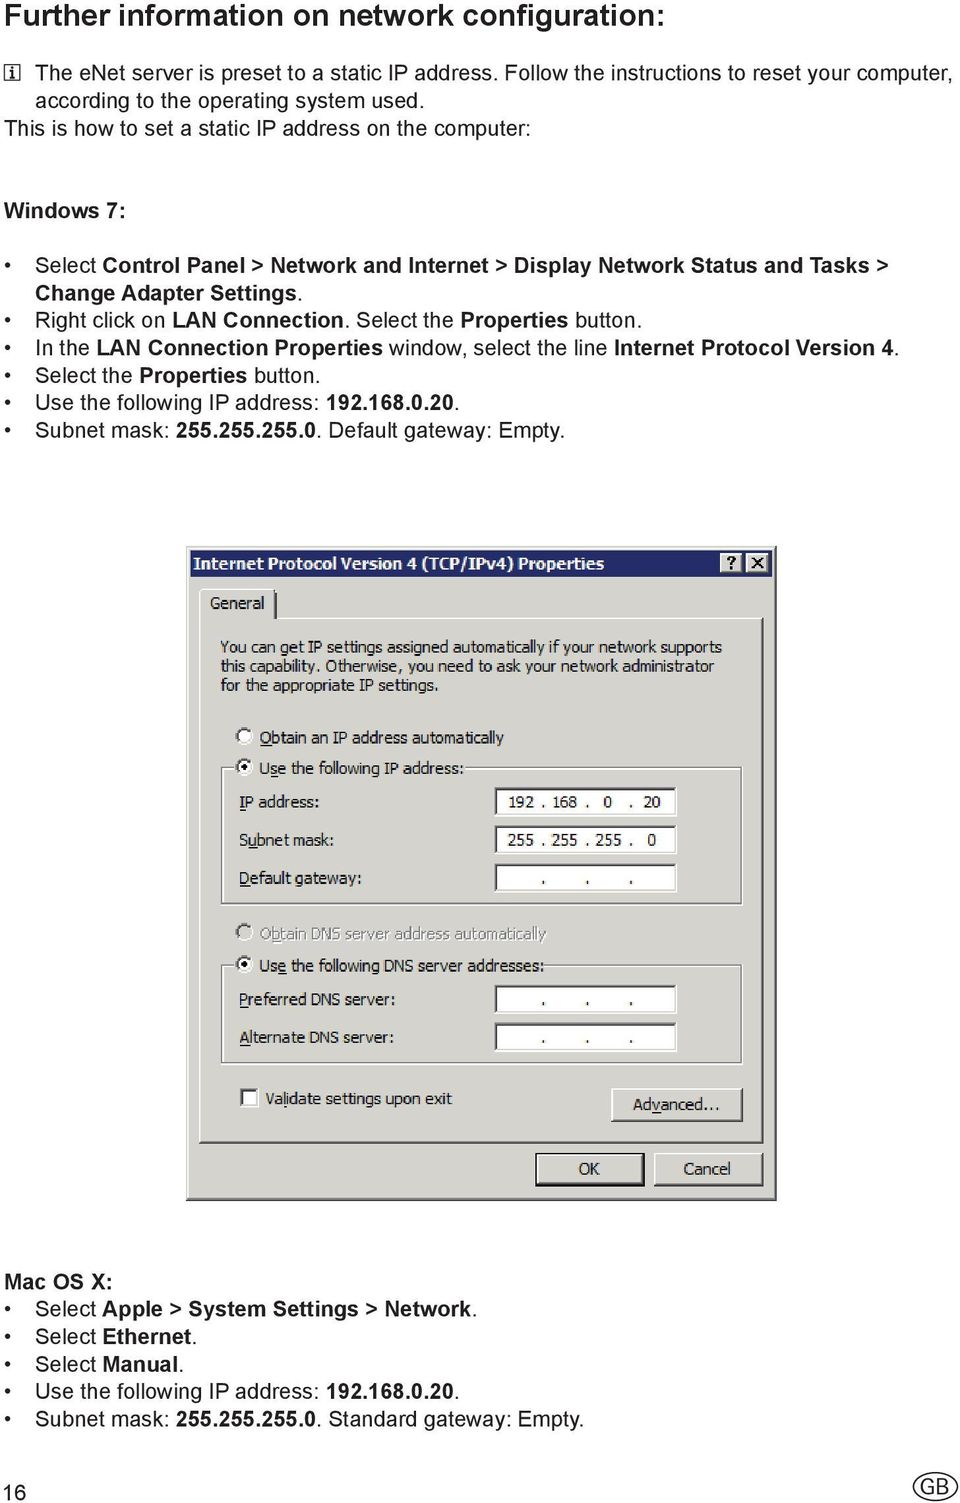 Right click on LAN Connection. Select the Properties button. In the LAN Connection Properties window, select the line Internet Protocol Version 4. Select the Properties button. Use the following IP address: 192.